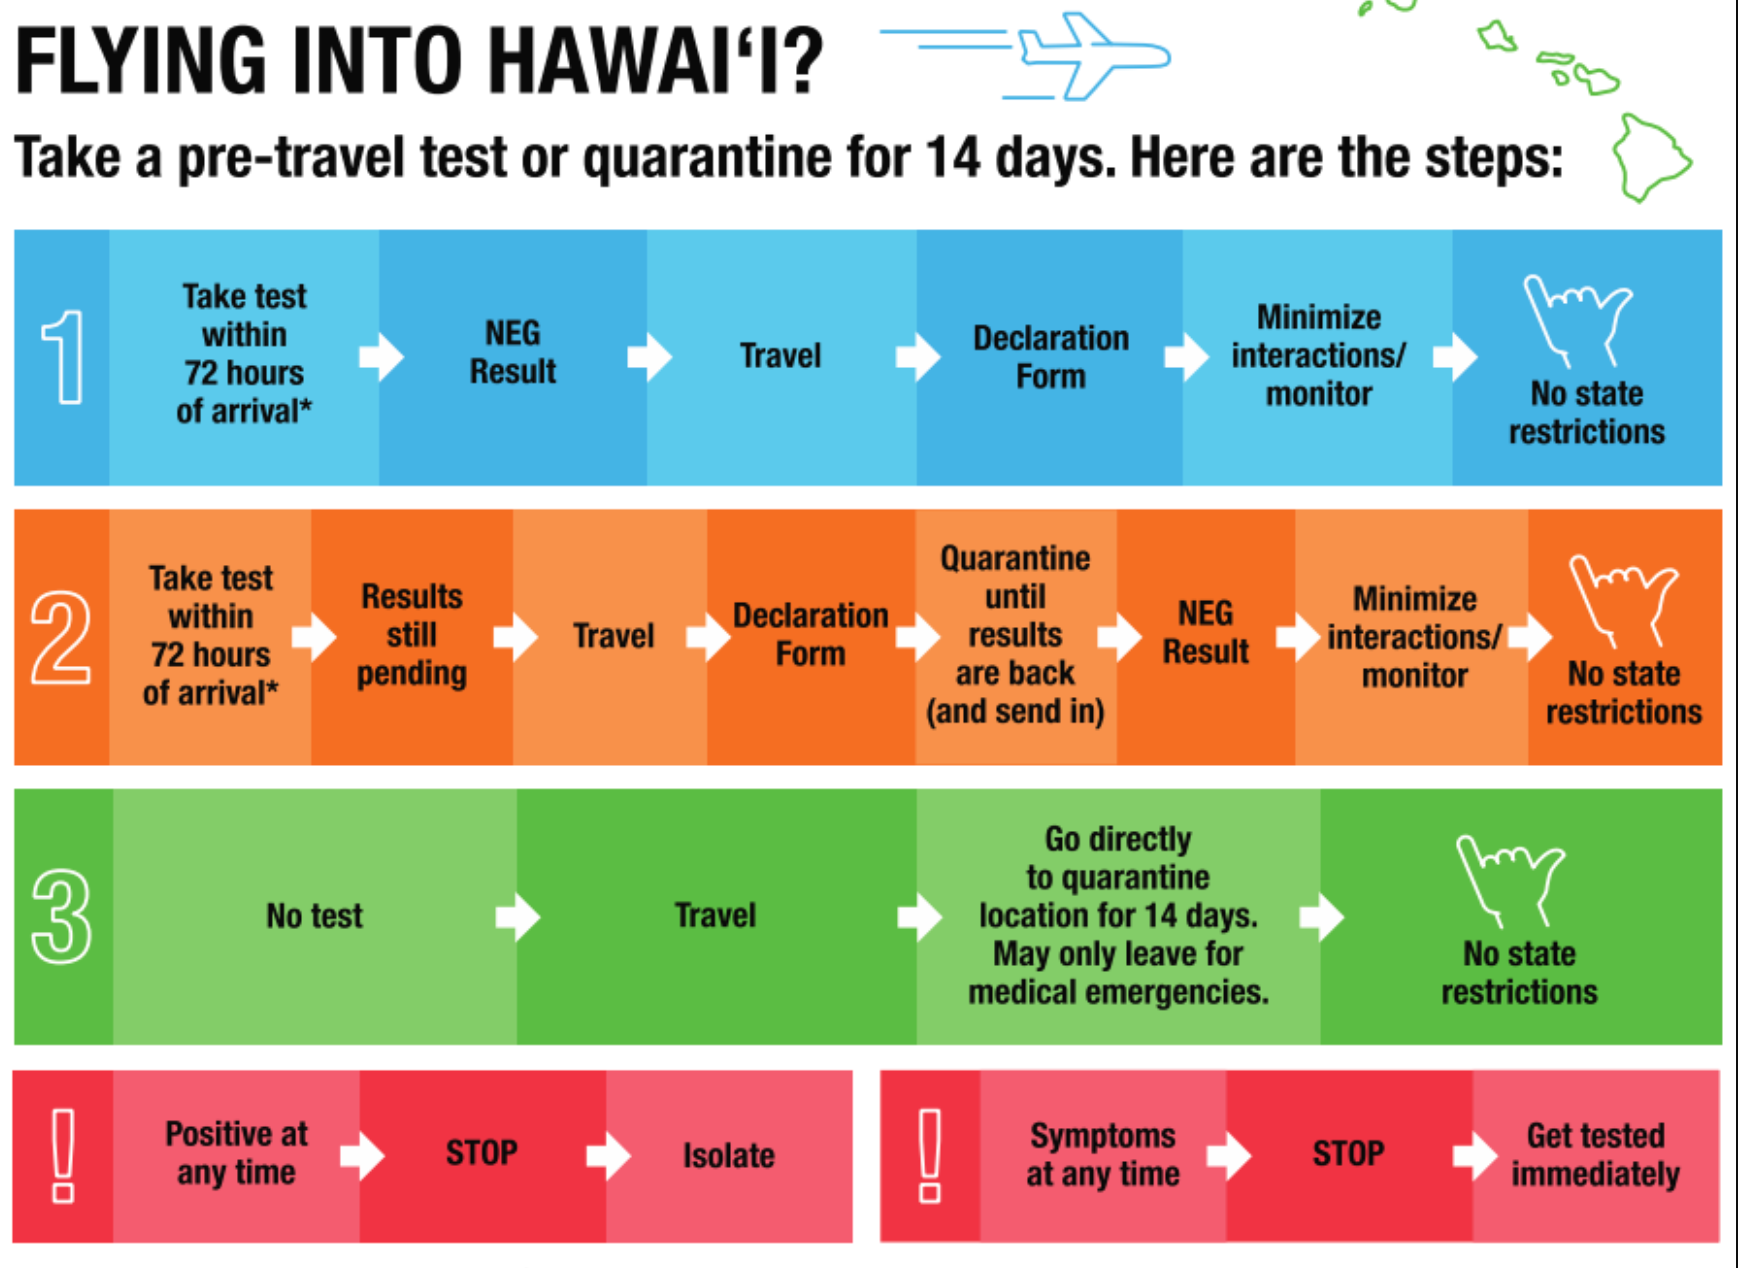 Hawaii to lift COVID-19 quarantine for visitors on October 15